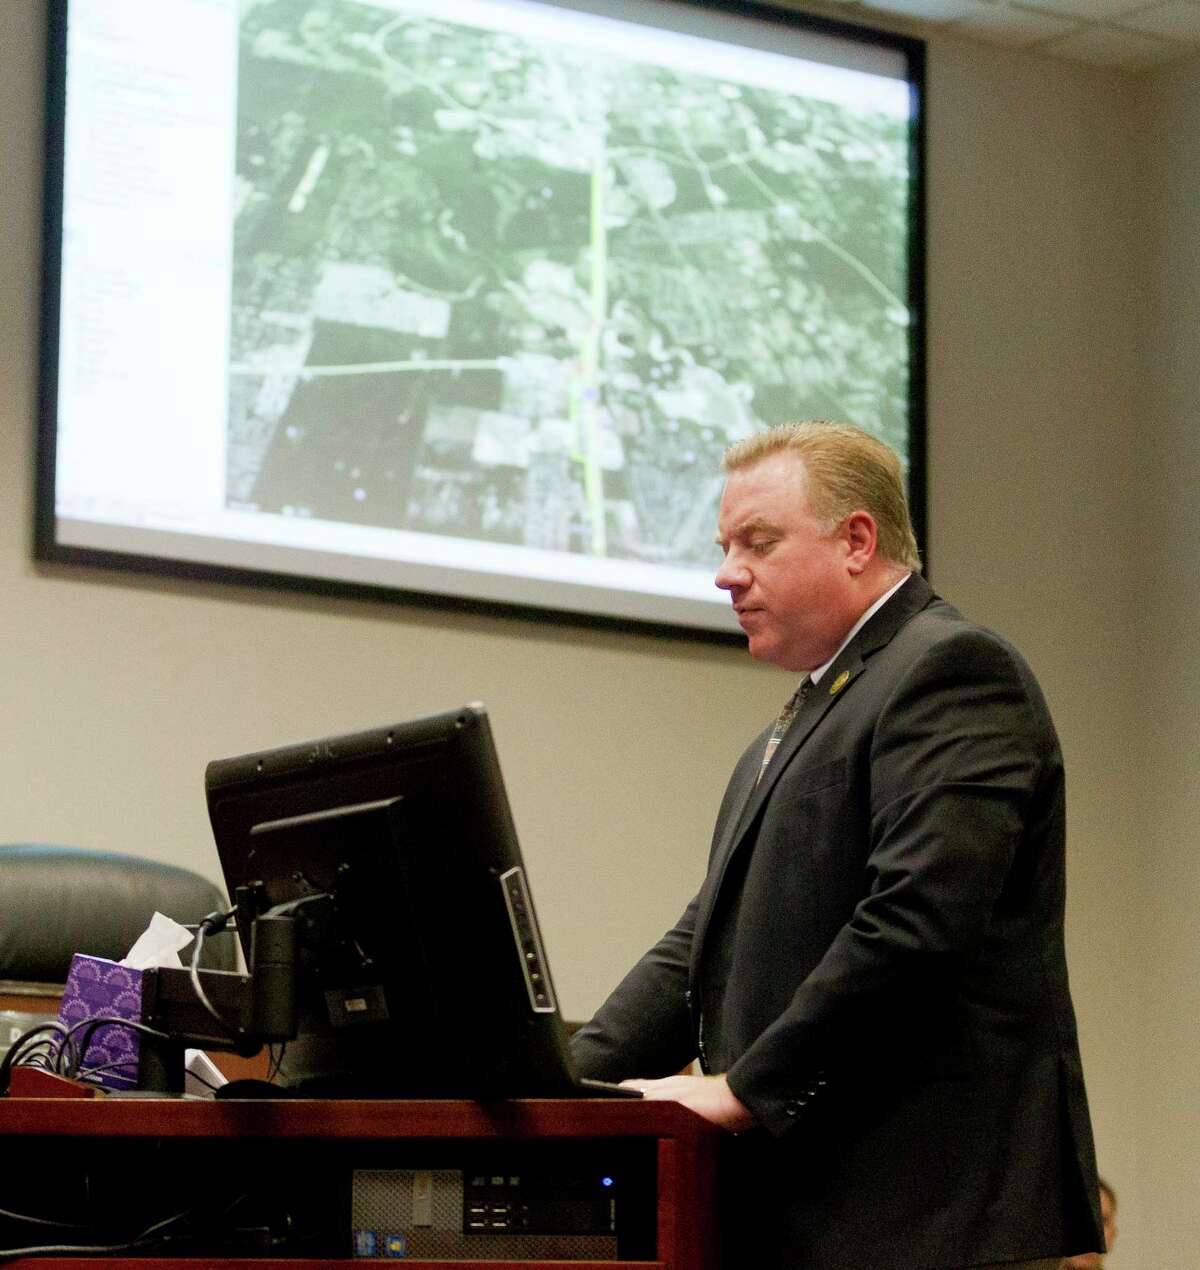 Tommy Wooley, director of capital projects and transportation for Conroe, seen in this file photo, presented an item to the Conroe City Council regarding an agreement with the Texas Department of Transportation to relocate a water line along Texas 105.